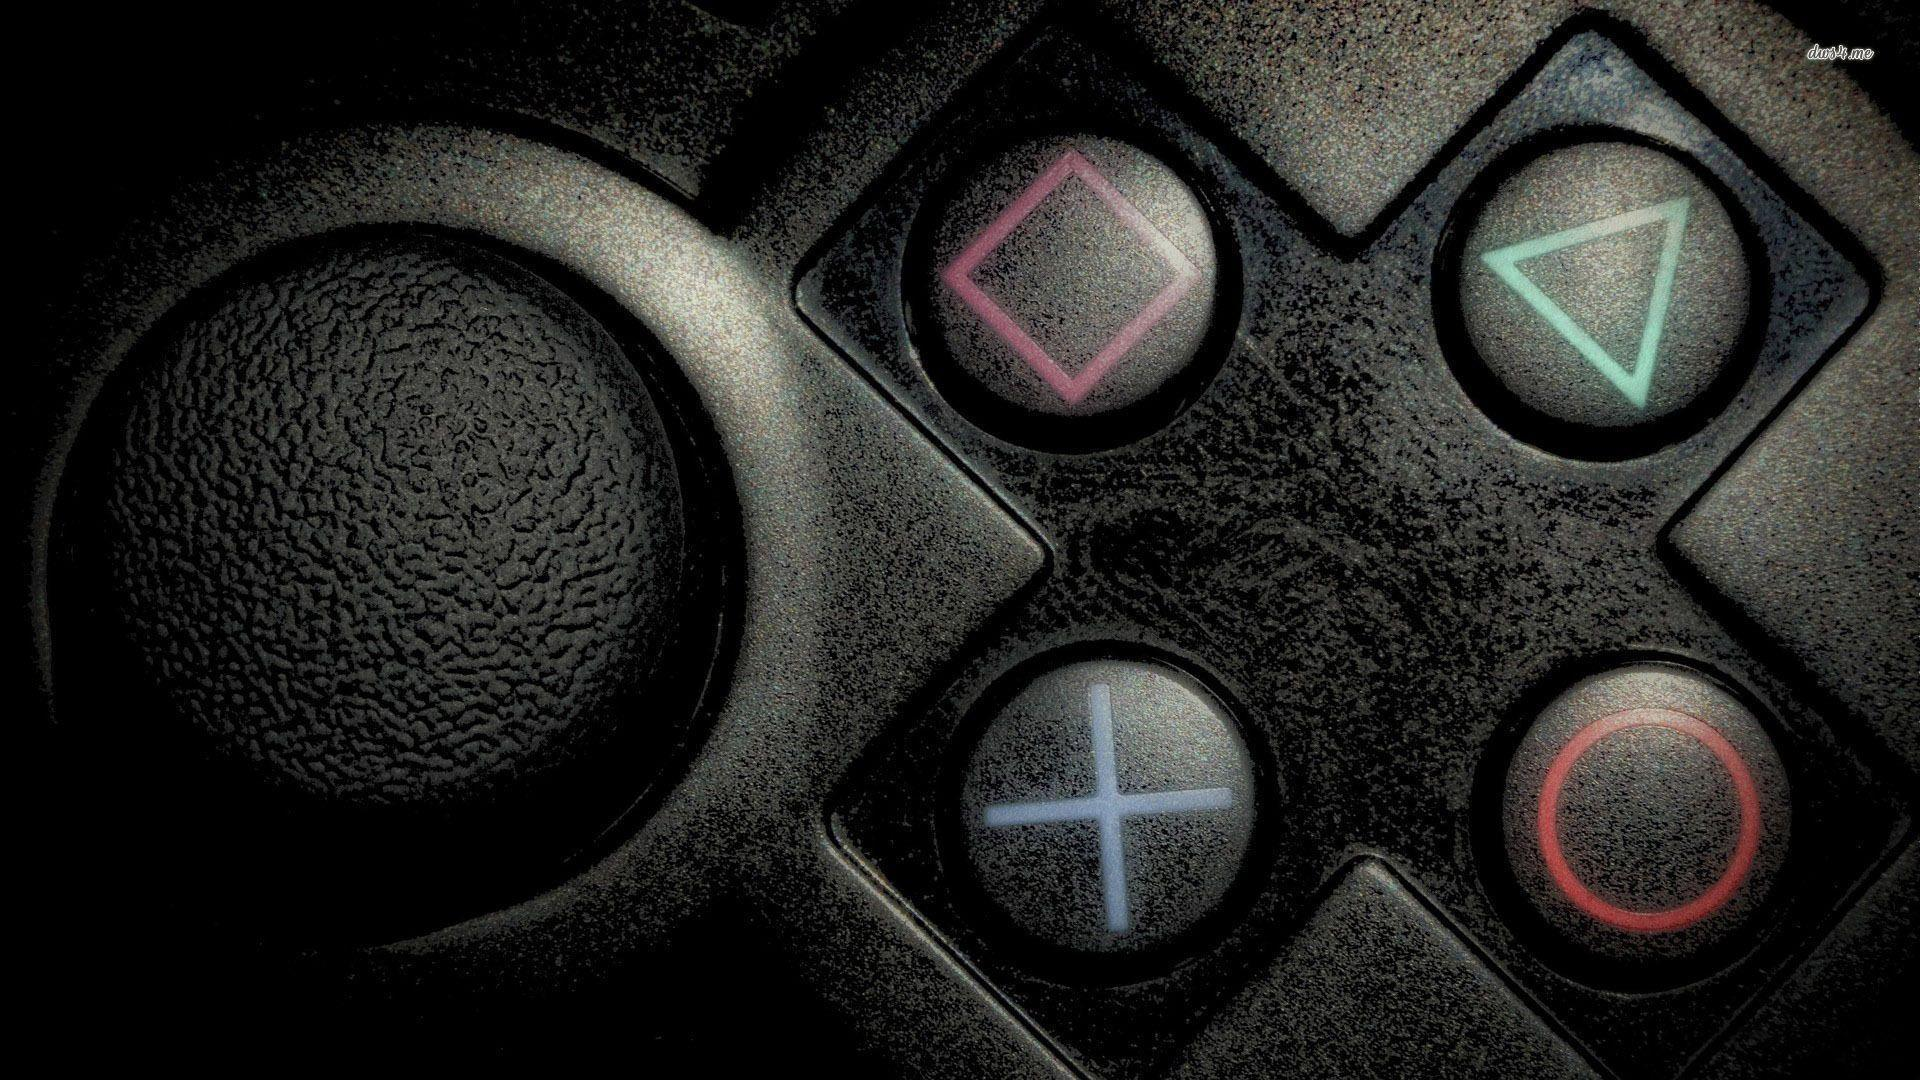 Neon PlayStation buttons Wallpapers